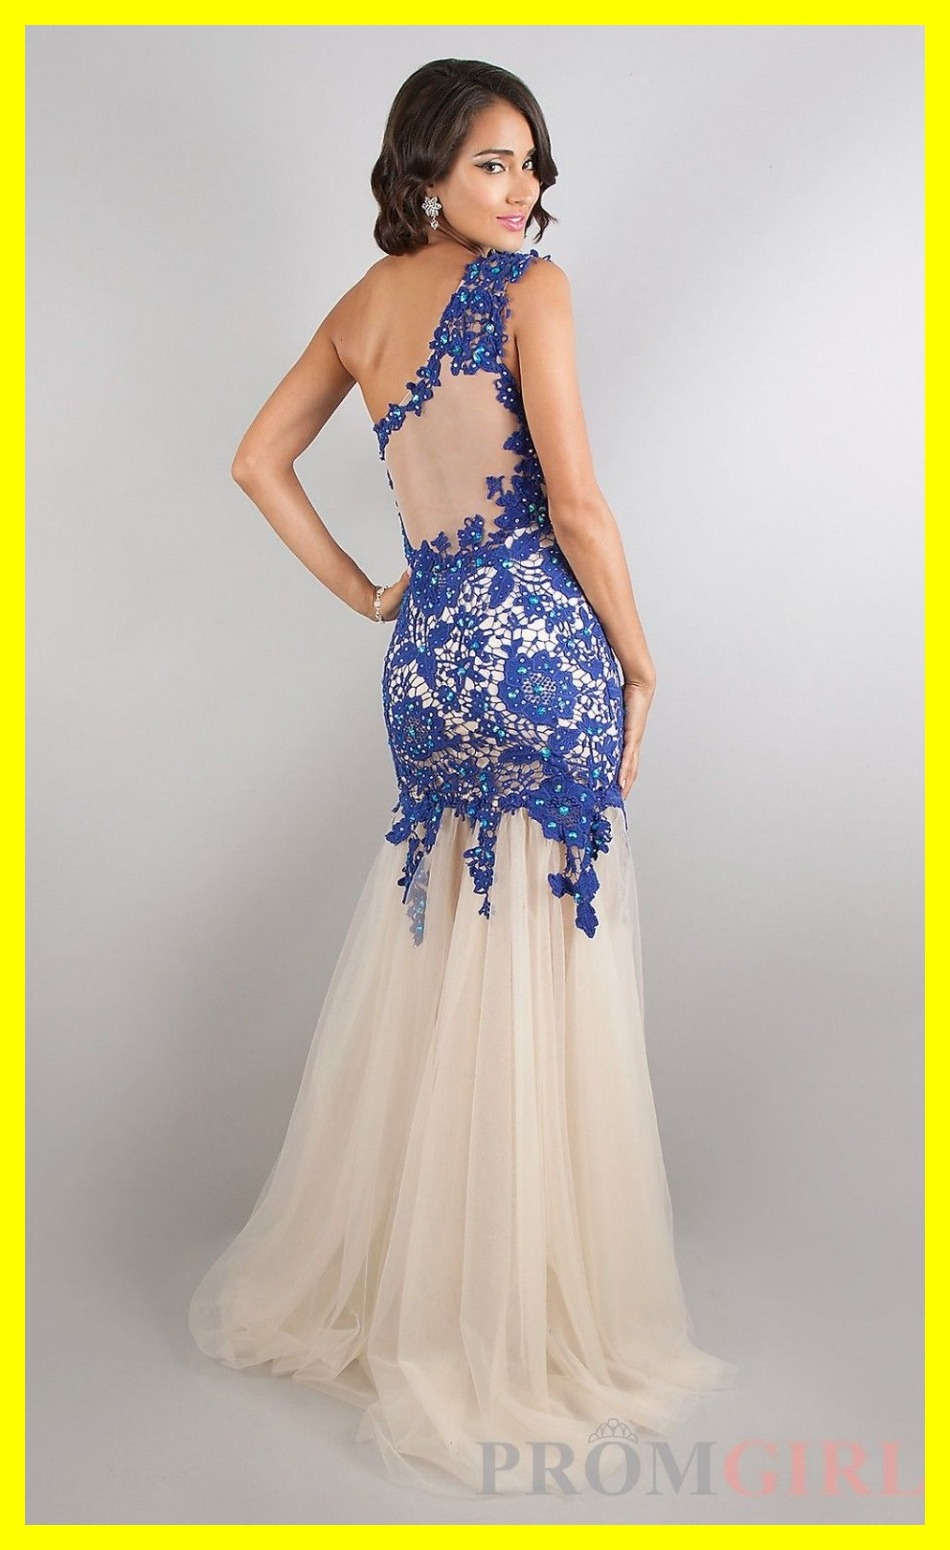 Prom dress stores in dallas area eligent prom dresses for Wedding dresses in dallas tx for cheap